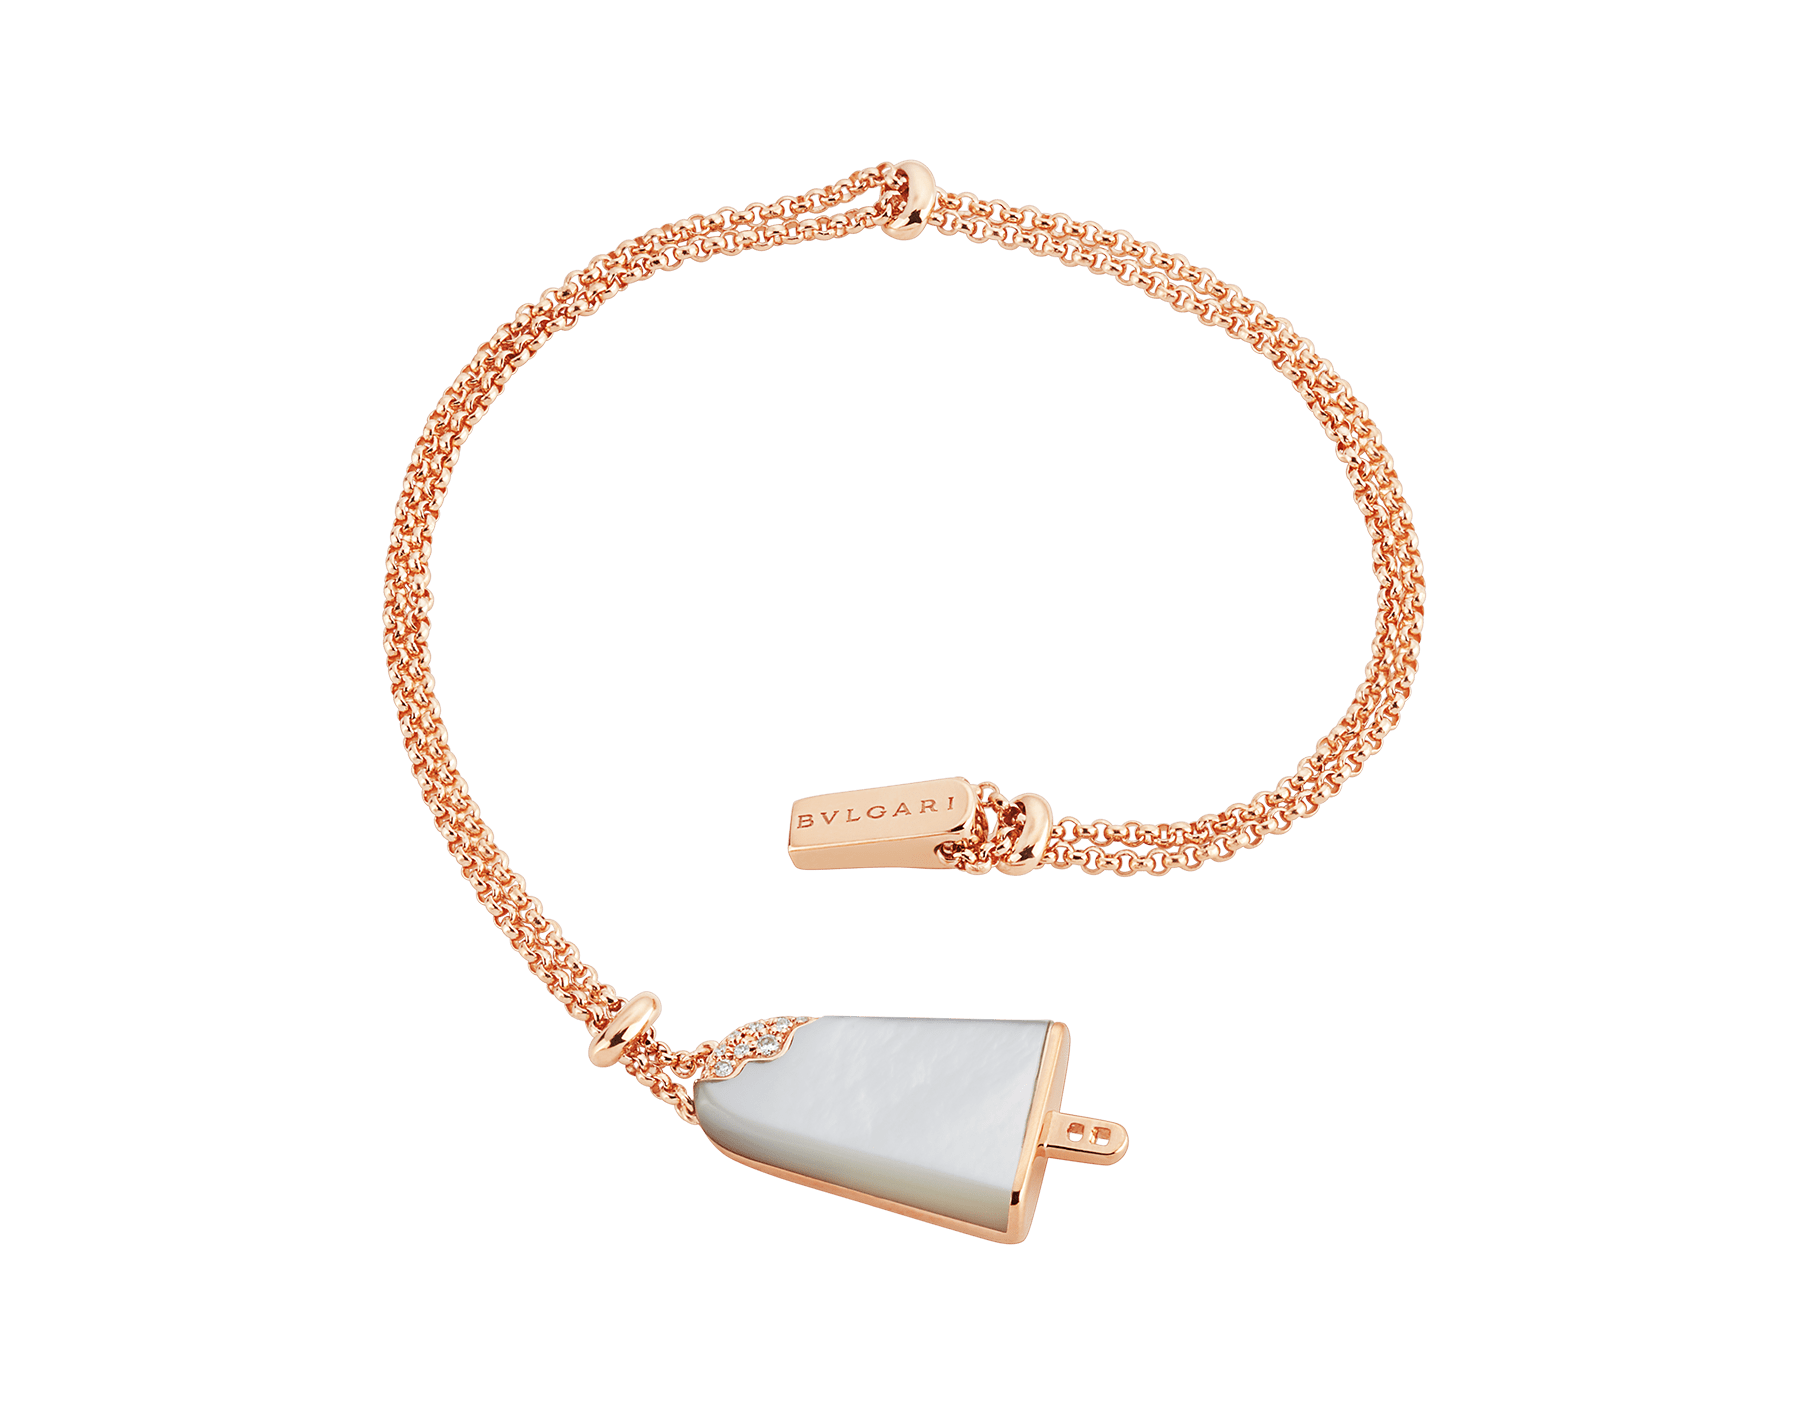 BVLGARI BVLGARI Gelati 18 kt rose gold soft bracelet set with mother-of-pearl and pavé diamonds BR858011 image 2